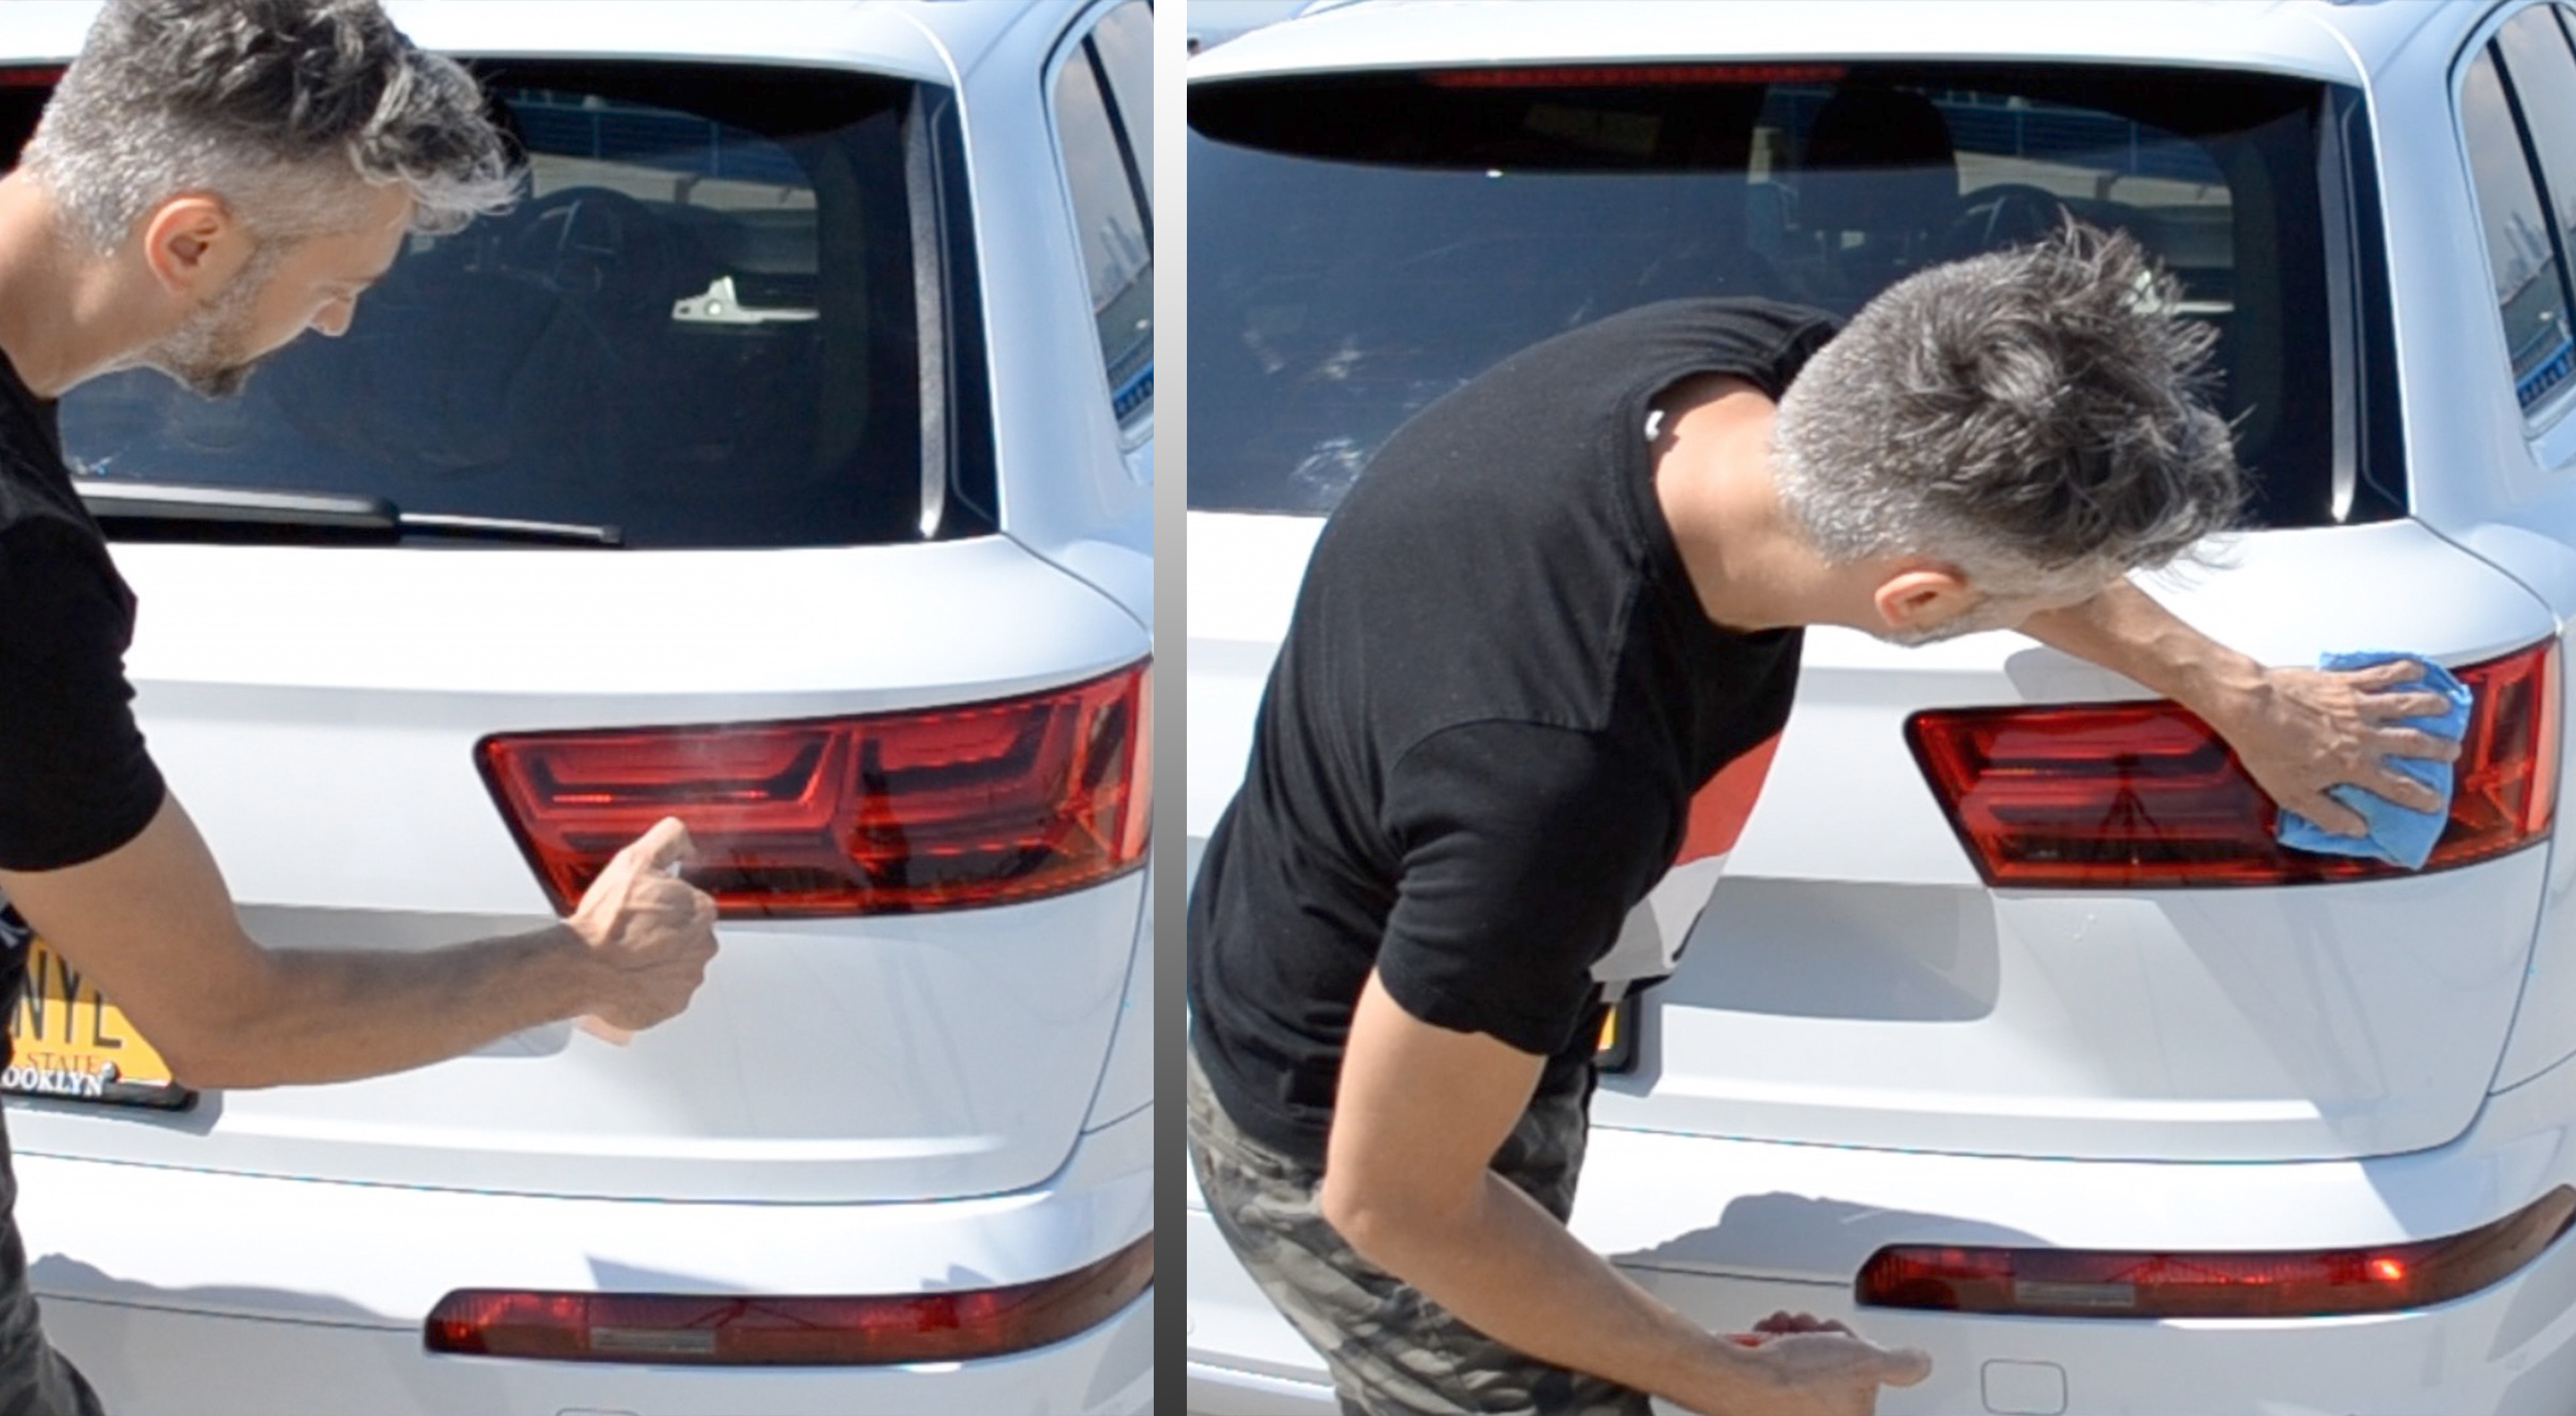 How to Install Precut Tail Light Covers